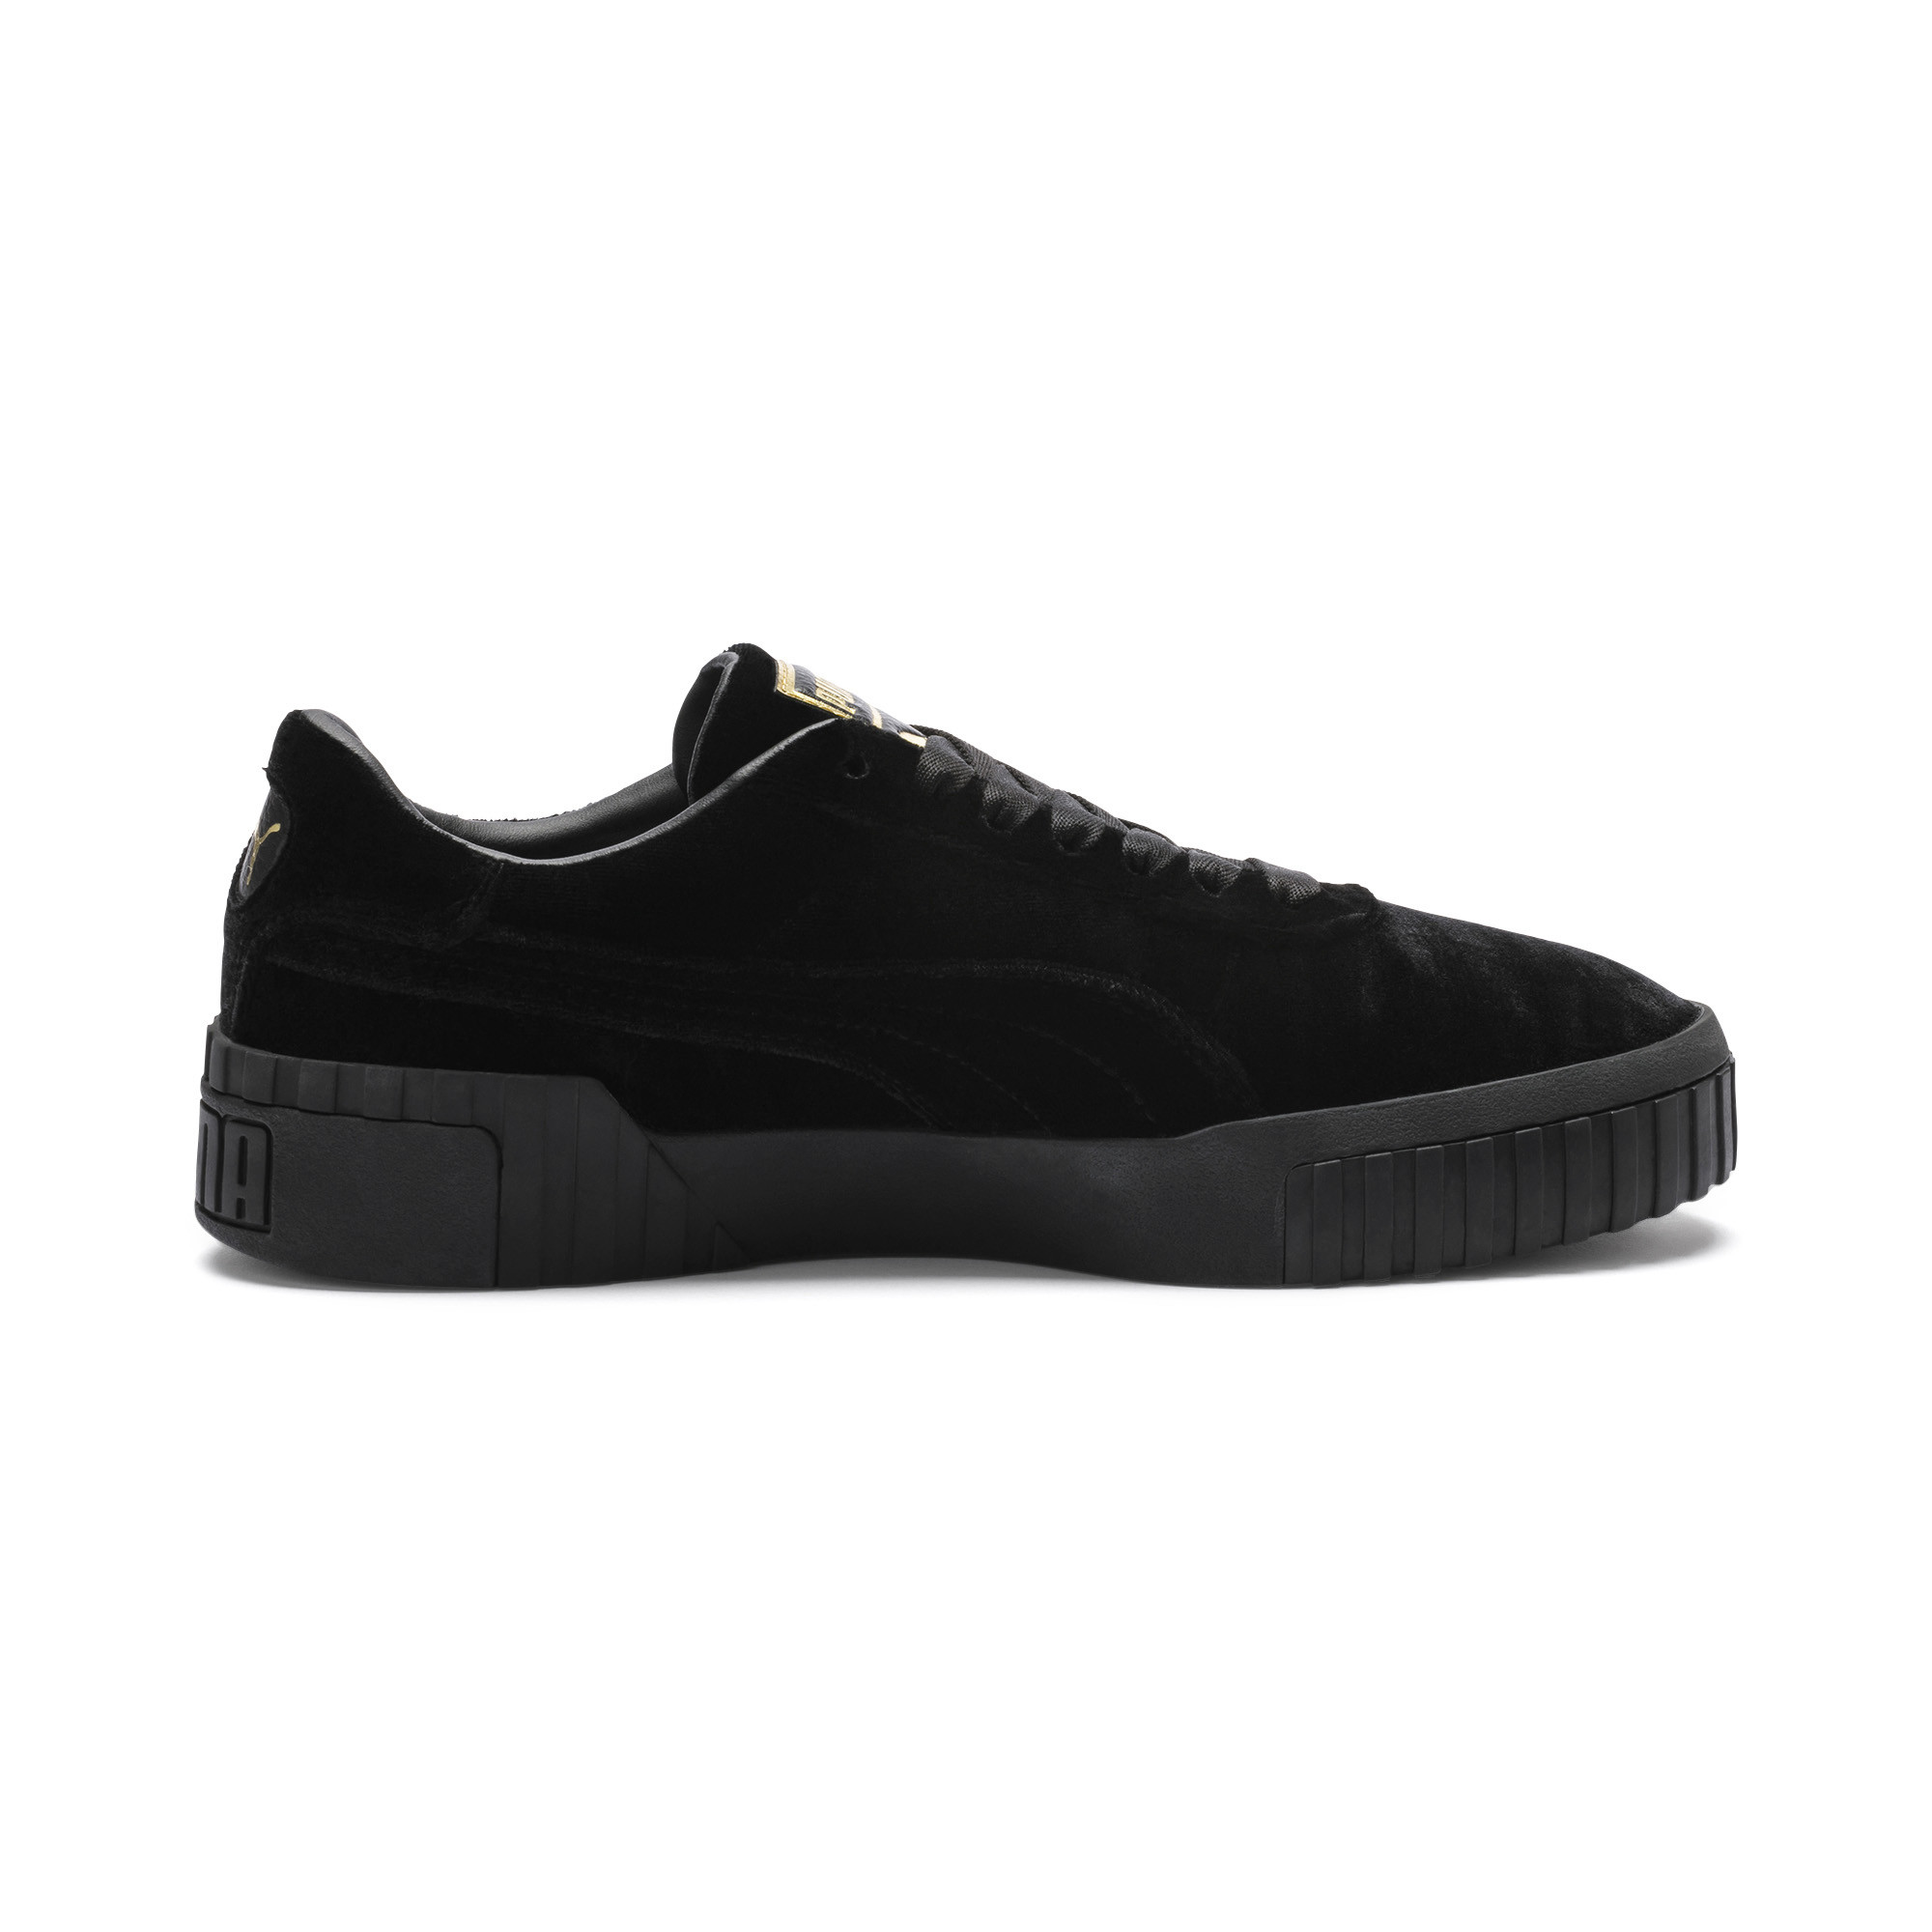 PUMA-Cali-Velvet-Women-039-s-Sneakers-Women-Shoe-Evolution thumbnail 6